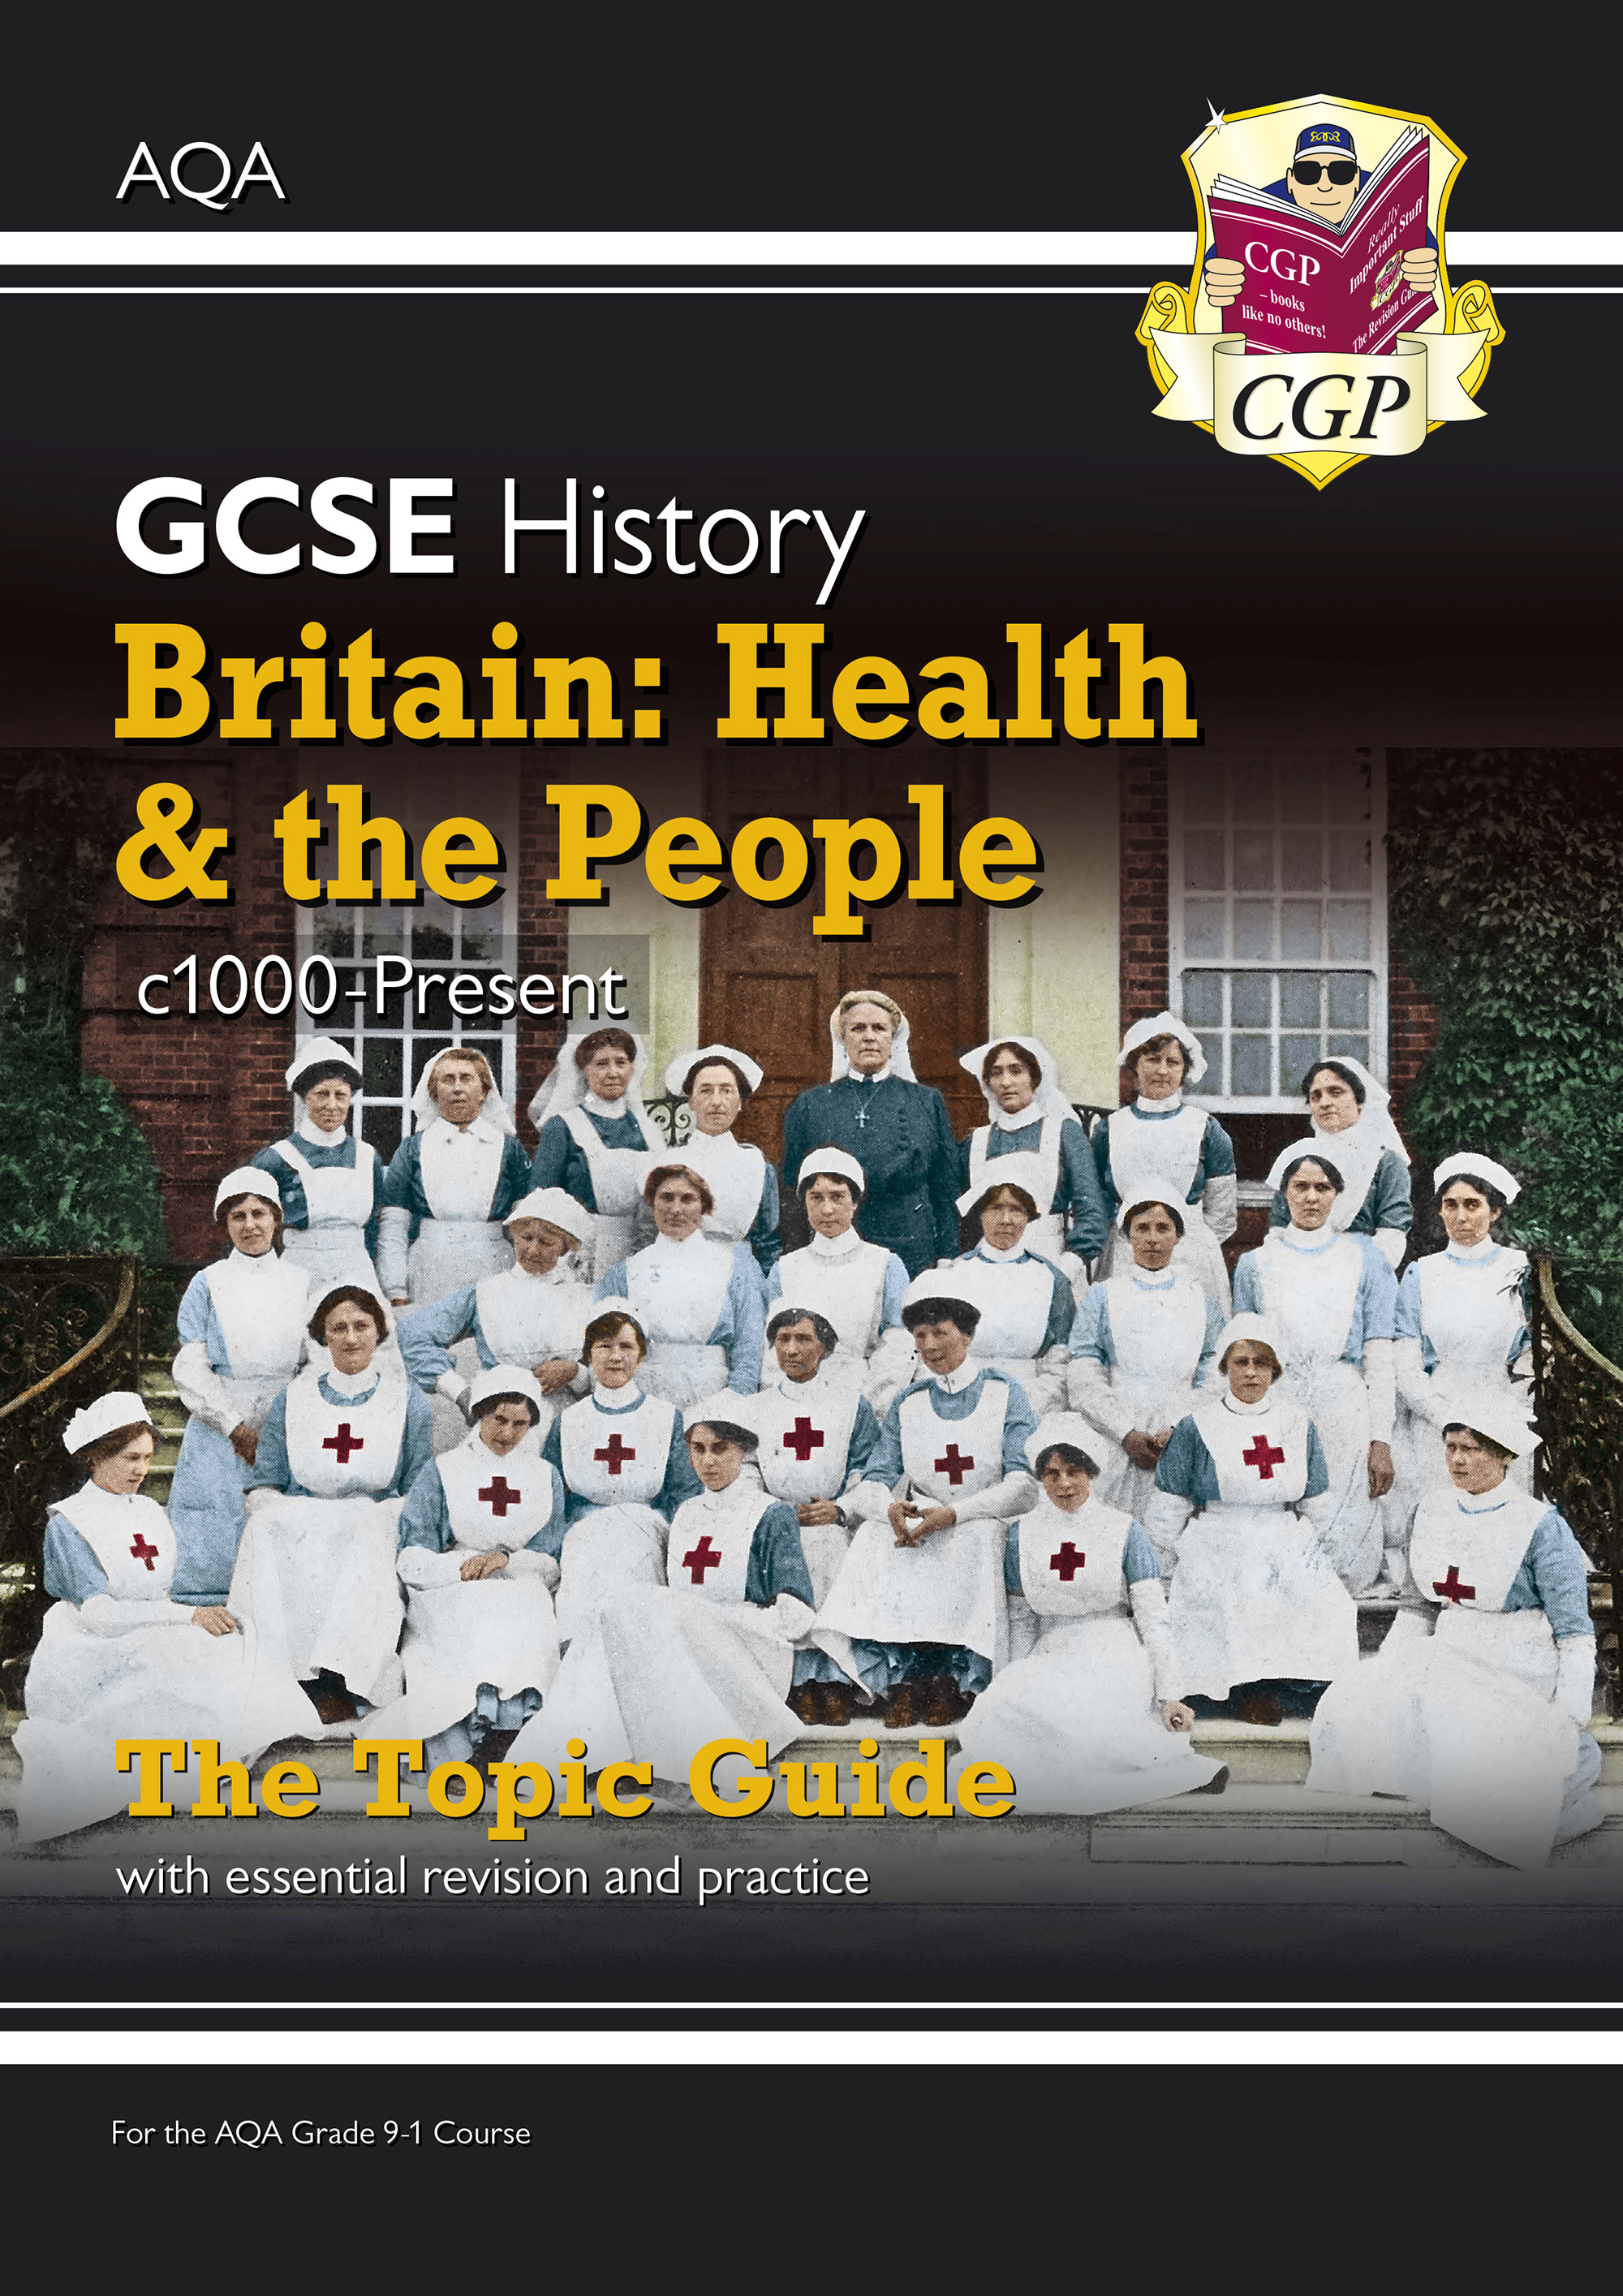 HAHPO41D - New Grade 9-1 GCSE History AQA Topic Guide - Britain: Health and the People: c1000-Presen